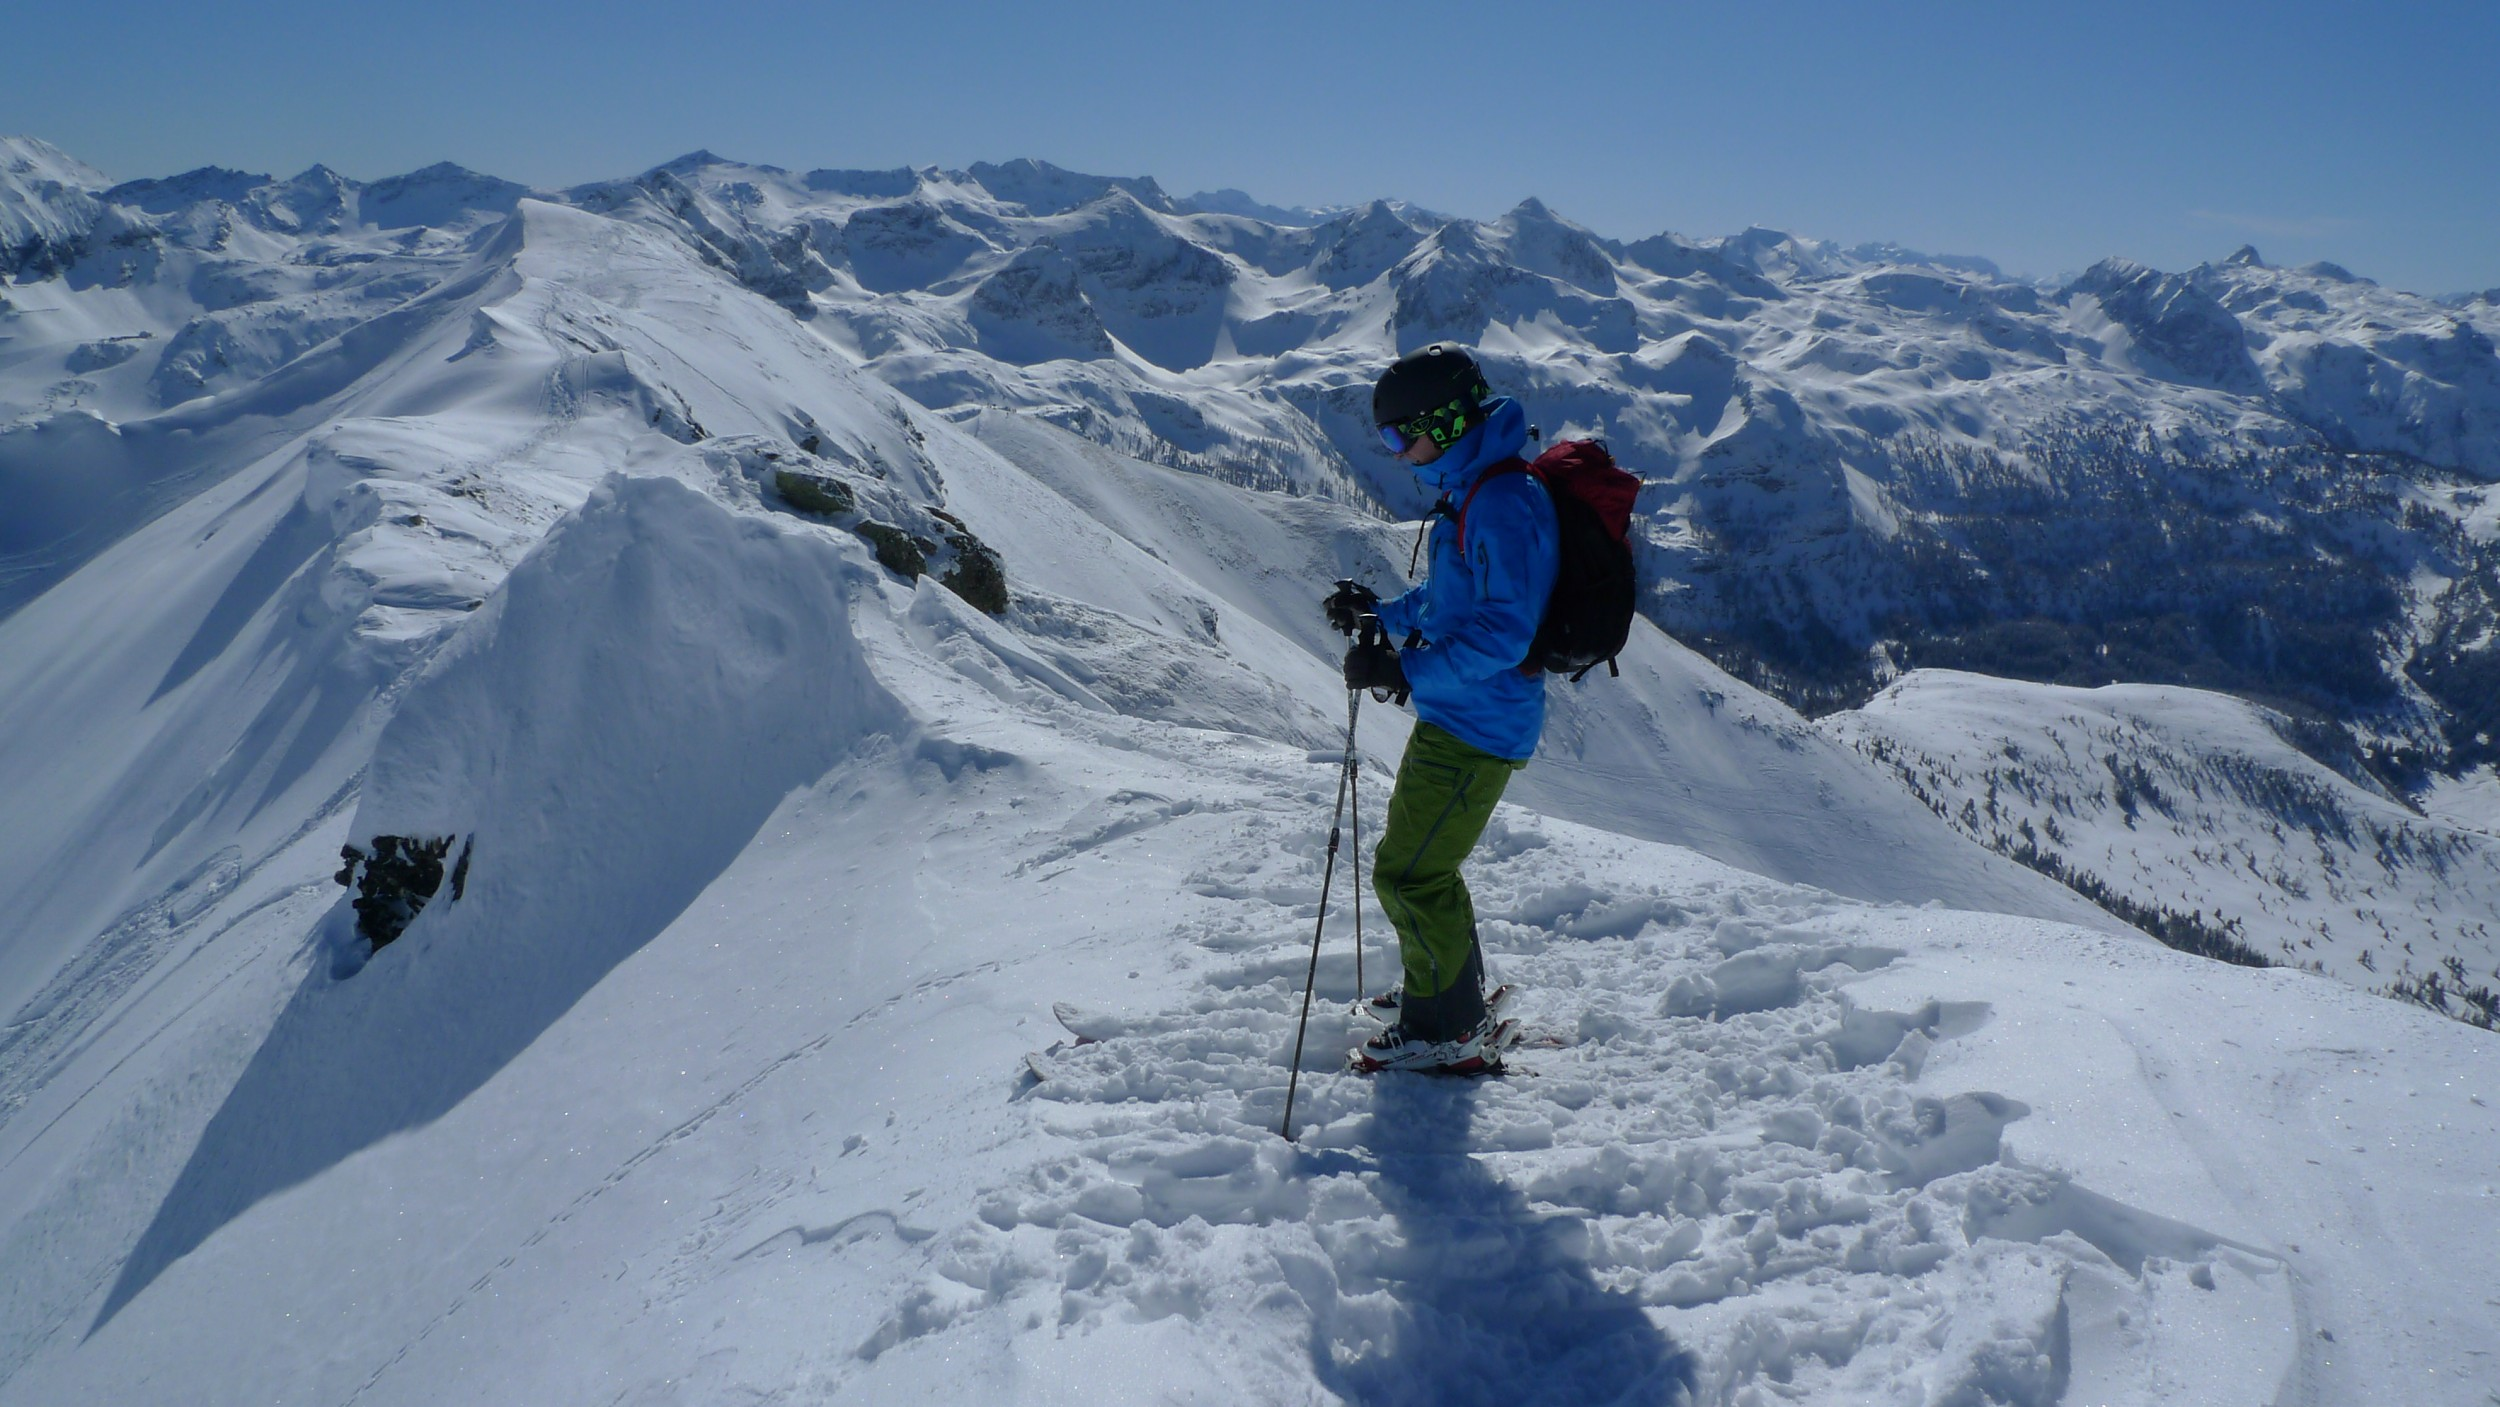 Ski Touring/Splitboarding course - beginners